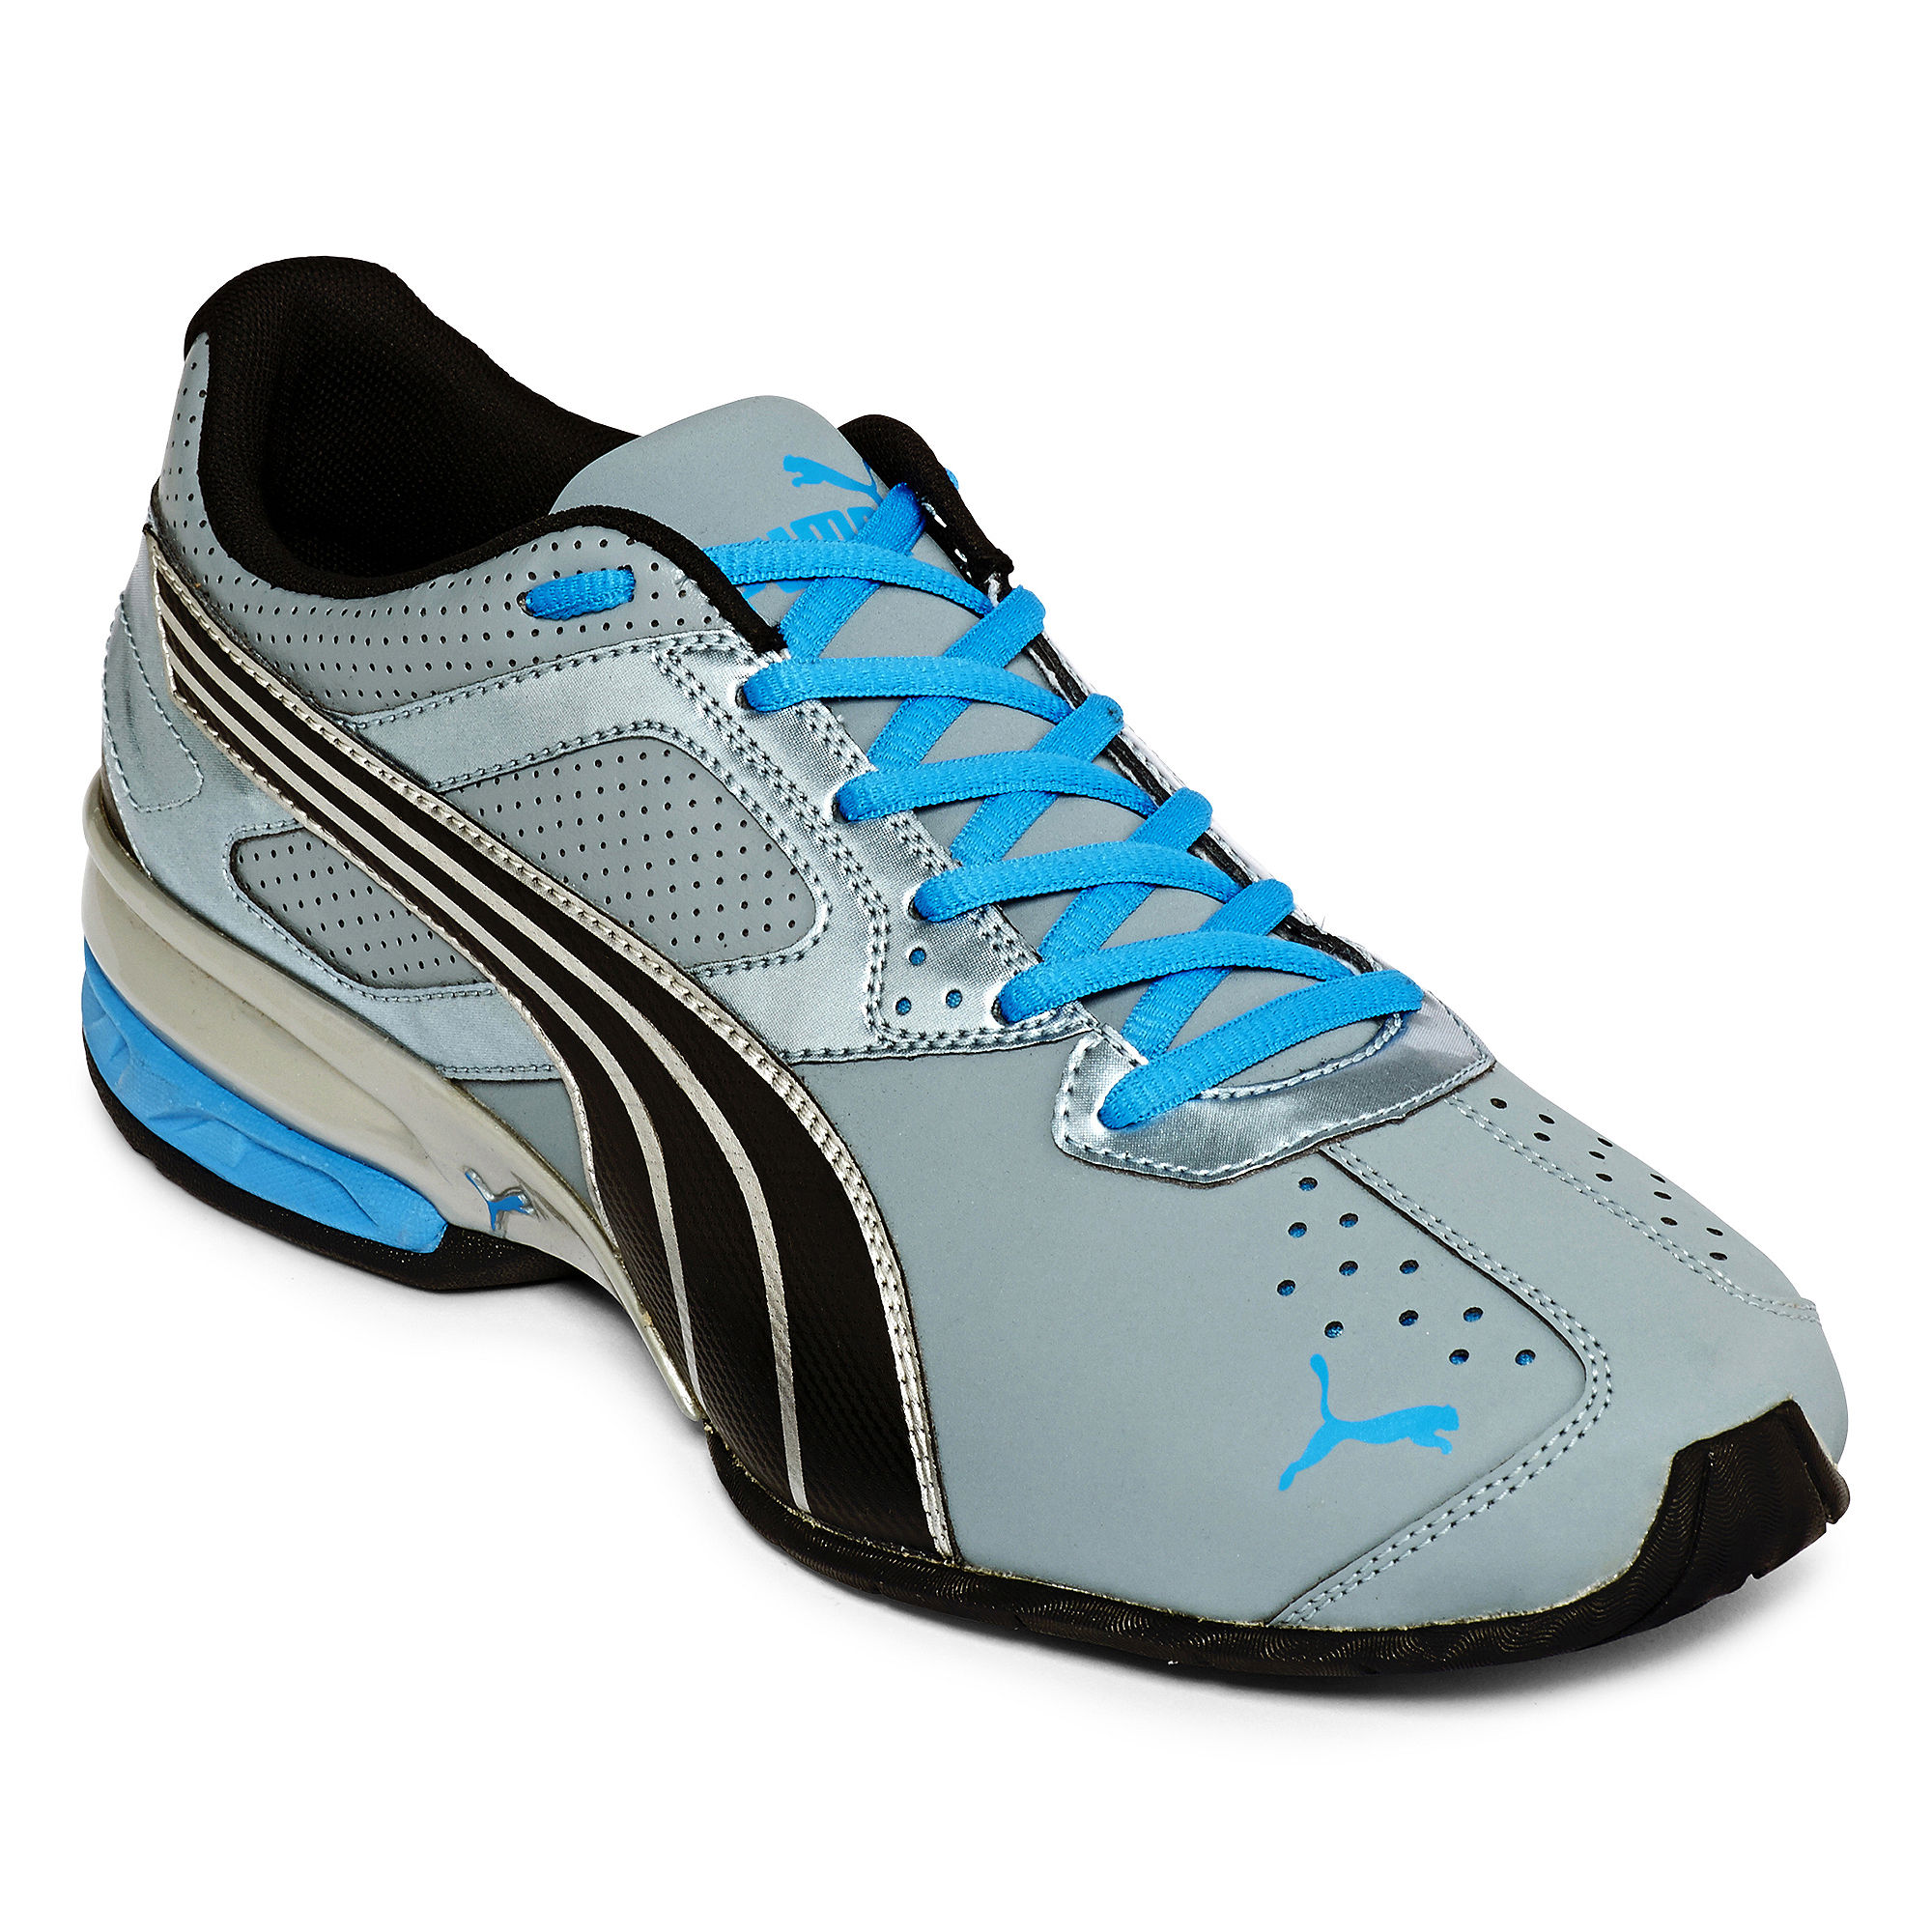 UPC 887128786234. ZOOM. UPC 887128786234 has following Product Name  Variations  PUMA Men s Tazon 5 Cross-Training Shoe ... 819dc8d03